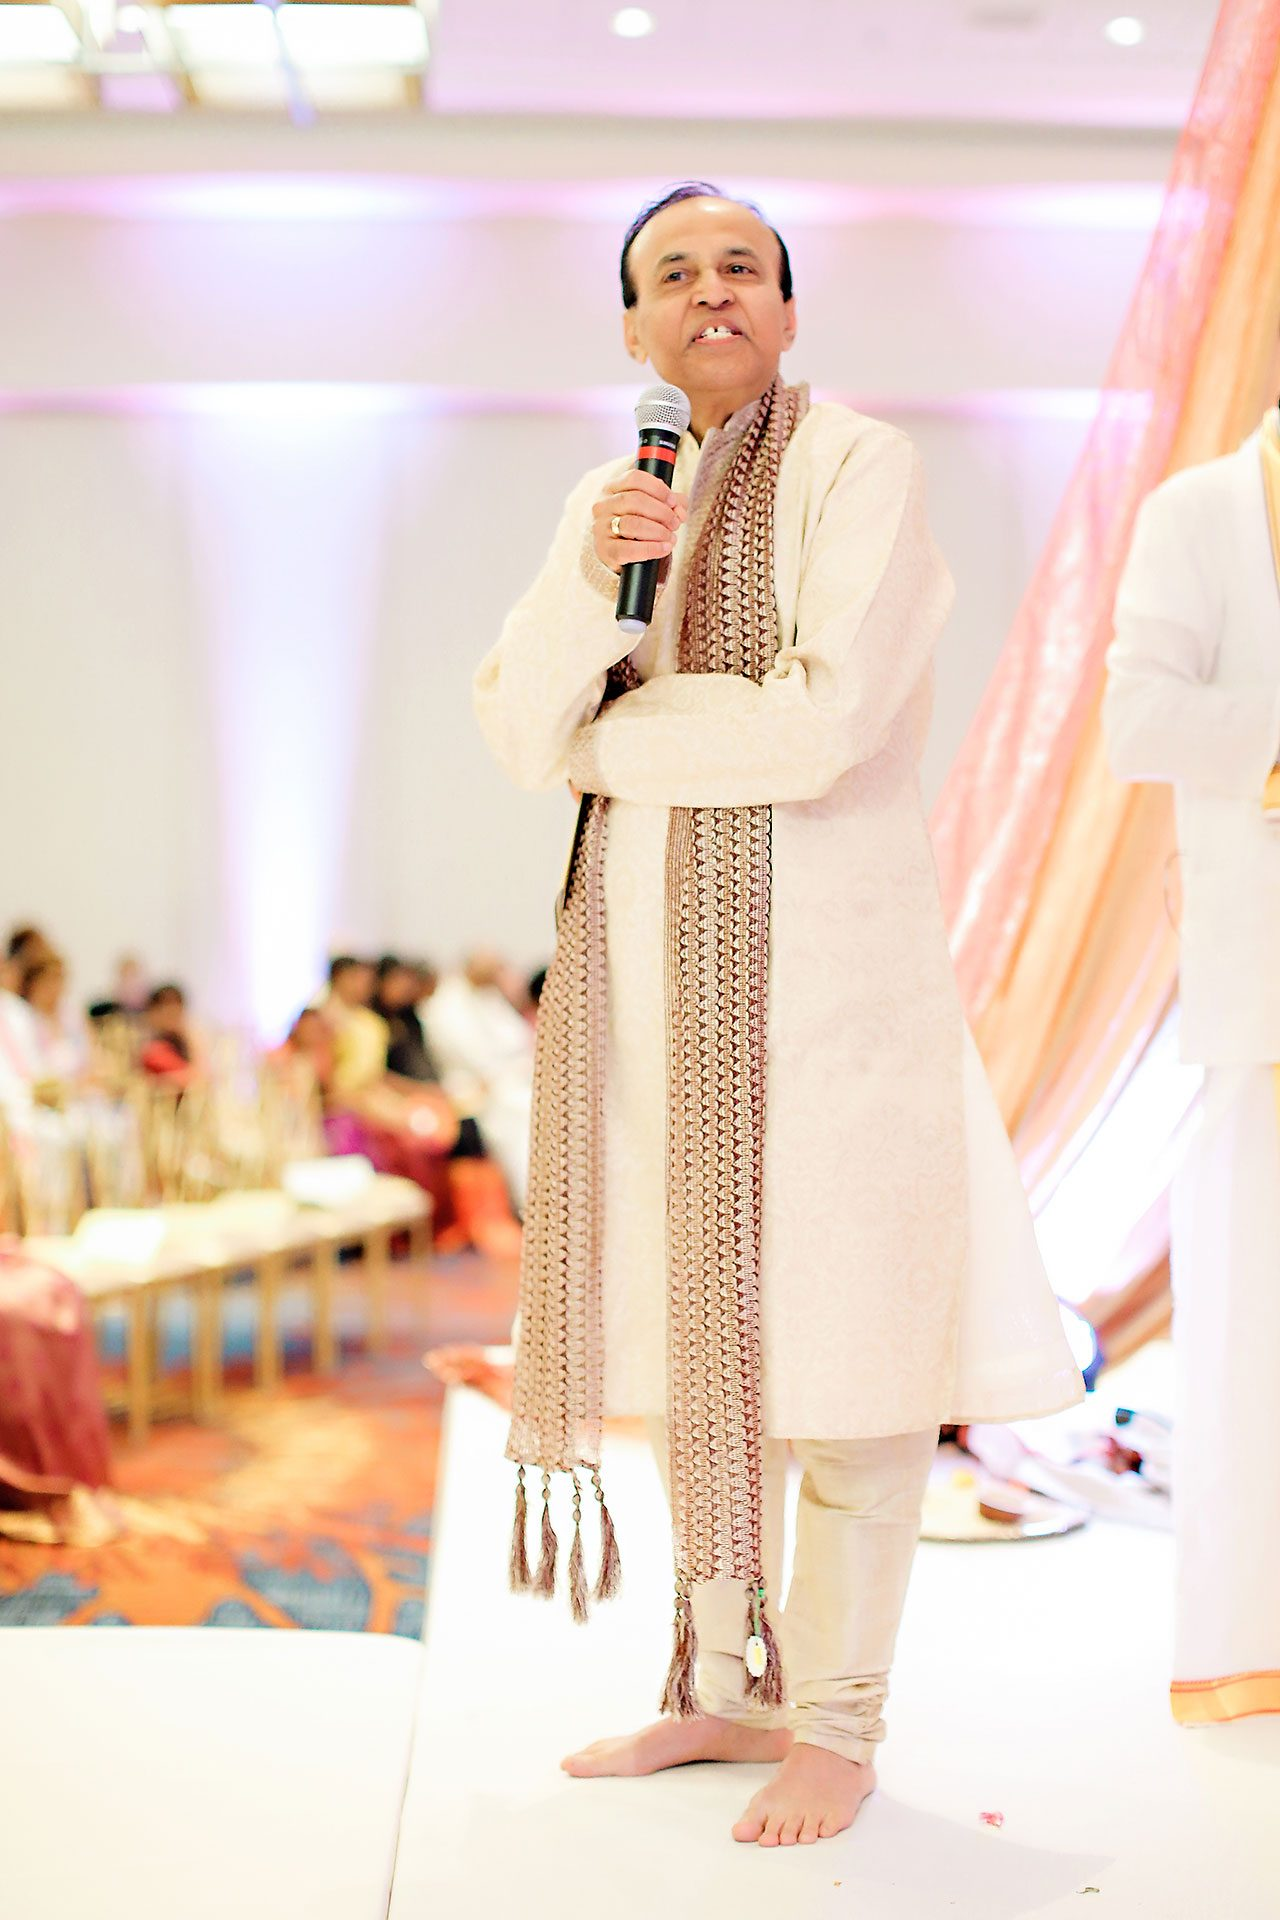 Joie Nikhil JW Marriott Indian Wedding 252